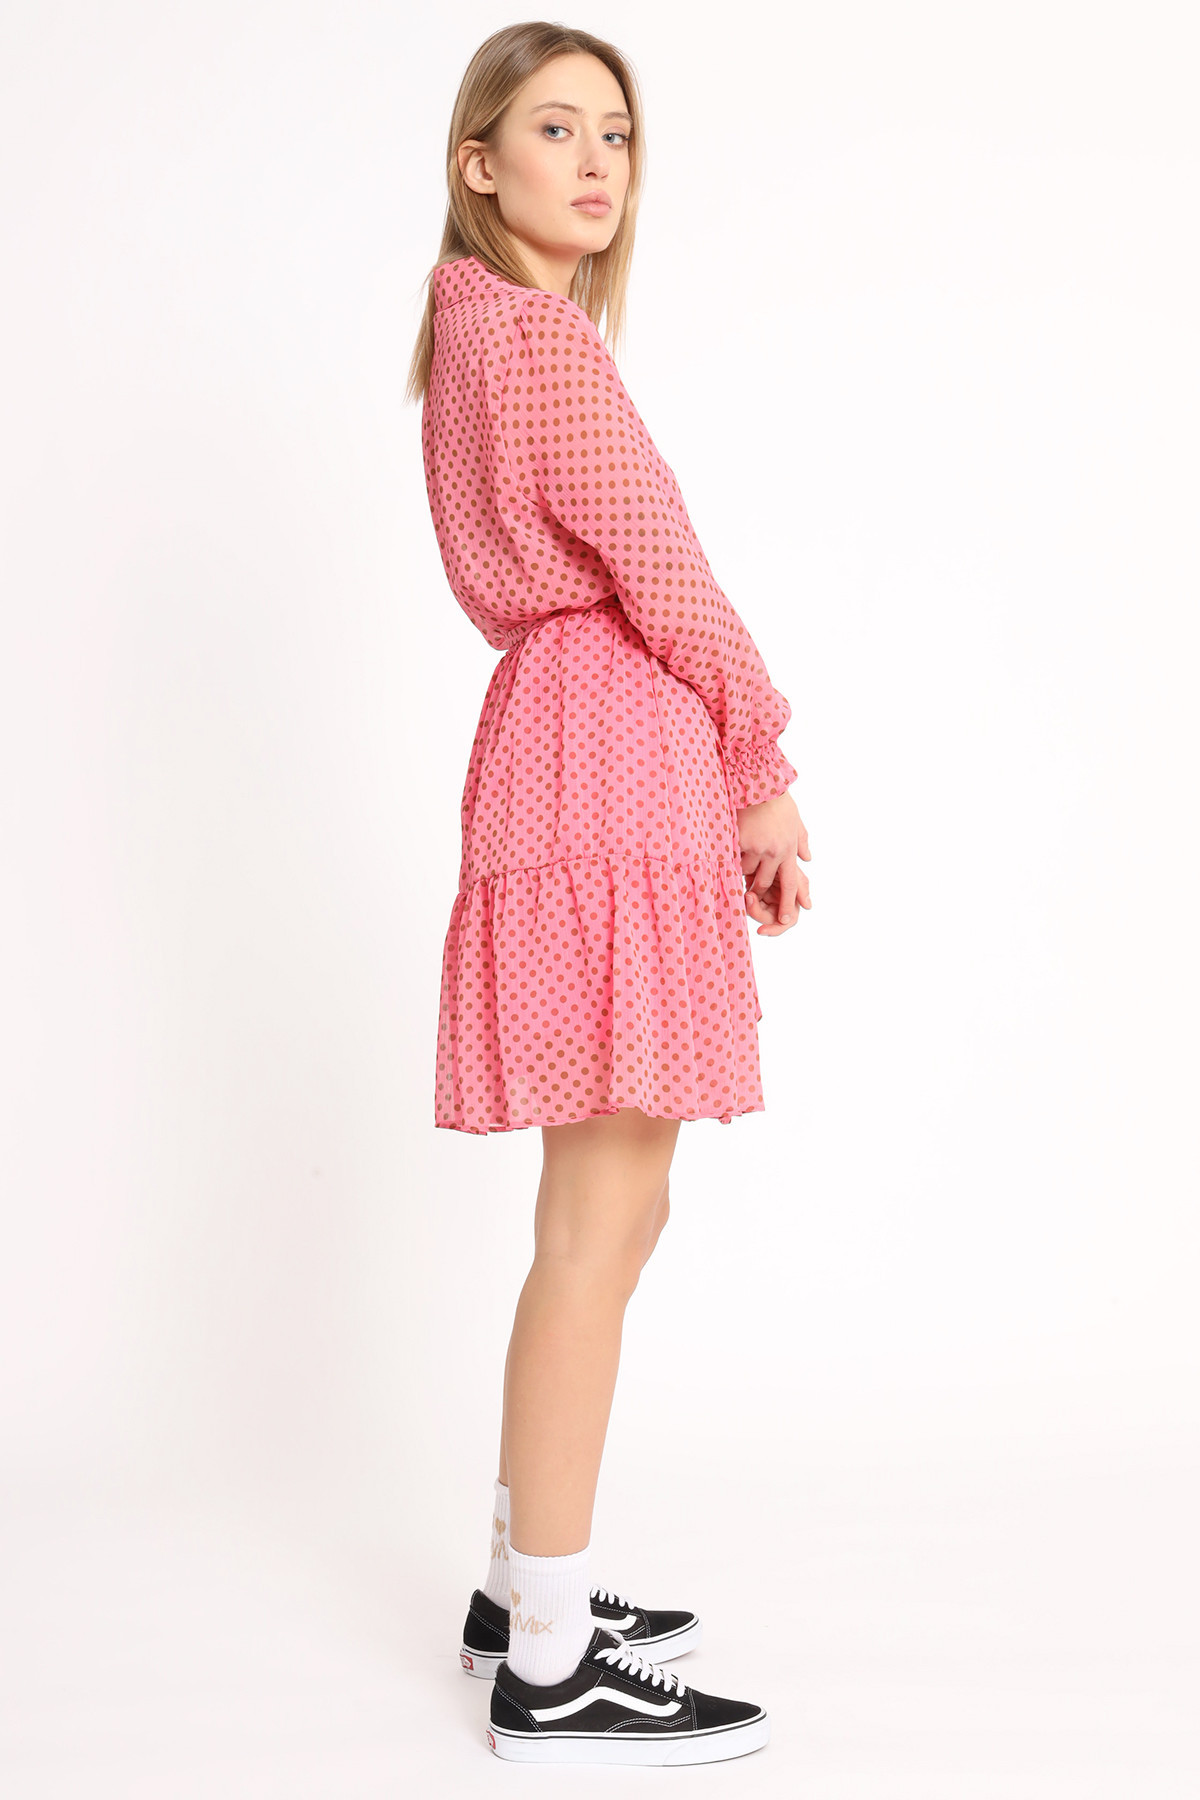 Georgette Polka Dot Dress